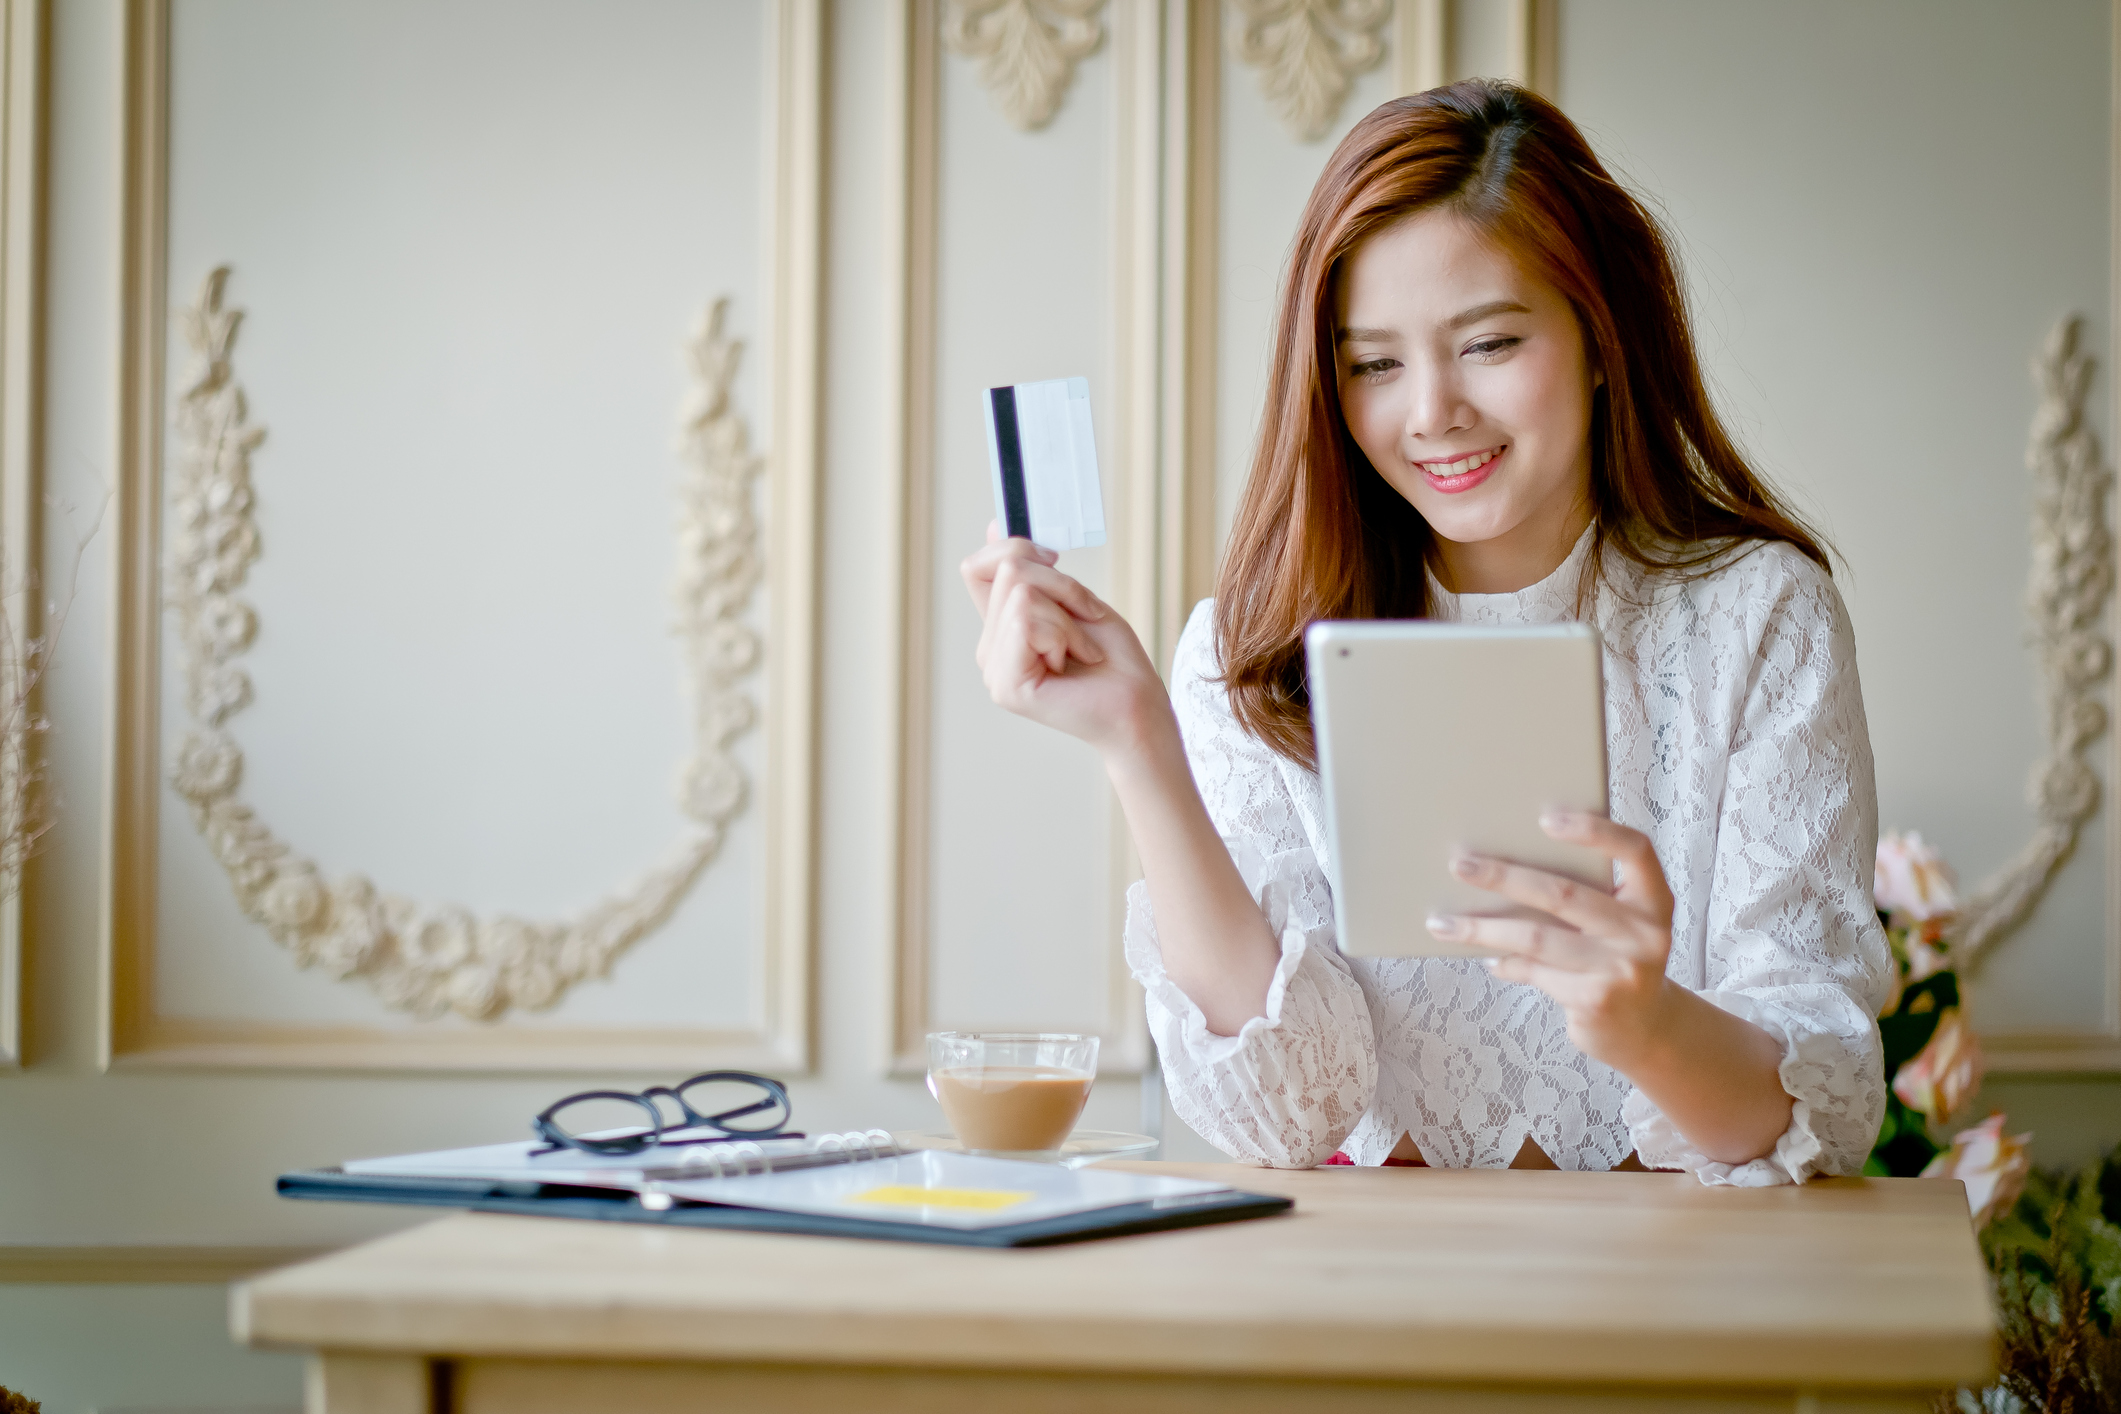 Happy woman shopping online, holding credit card, using tablet computer, electronic purchase.